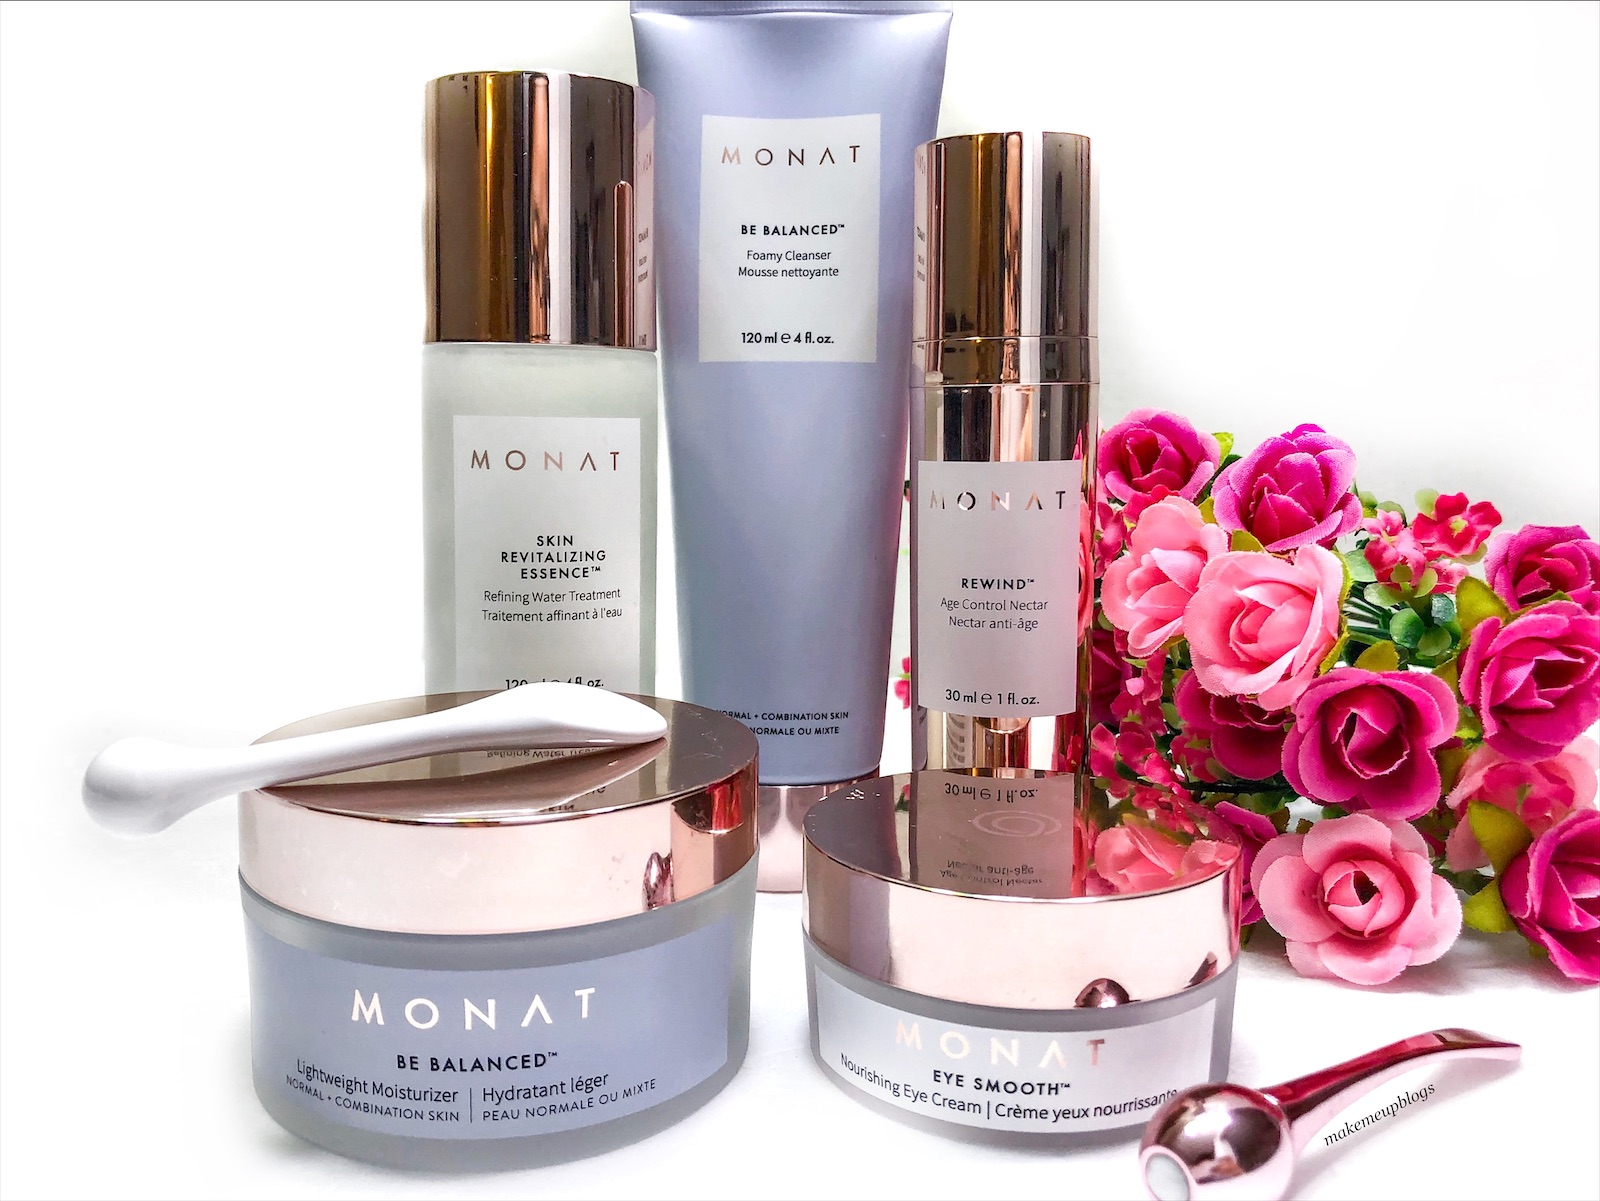 Monat Skincare Be Balanced First Impressions Makemeupblogs A